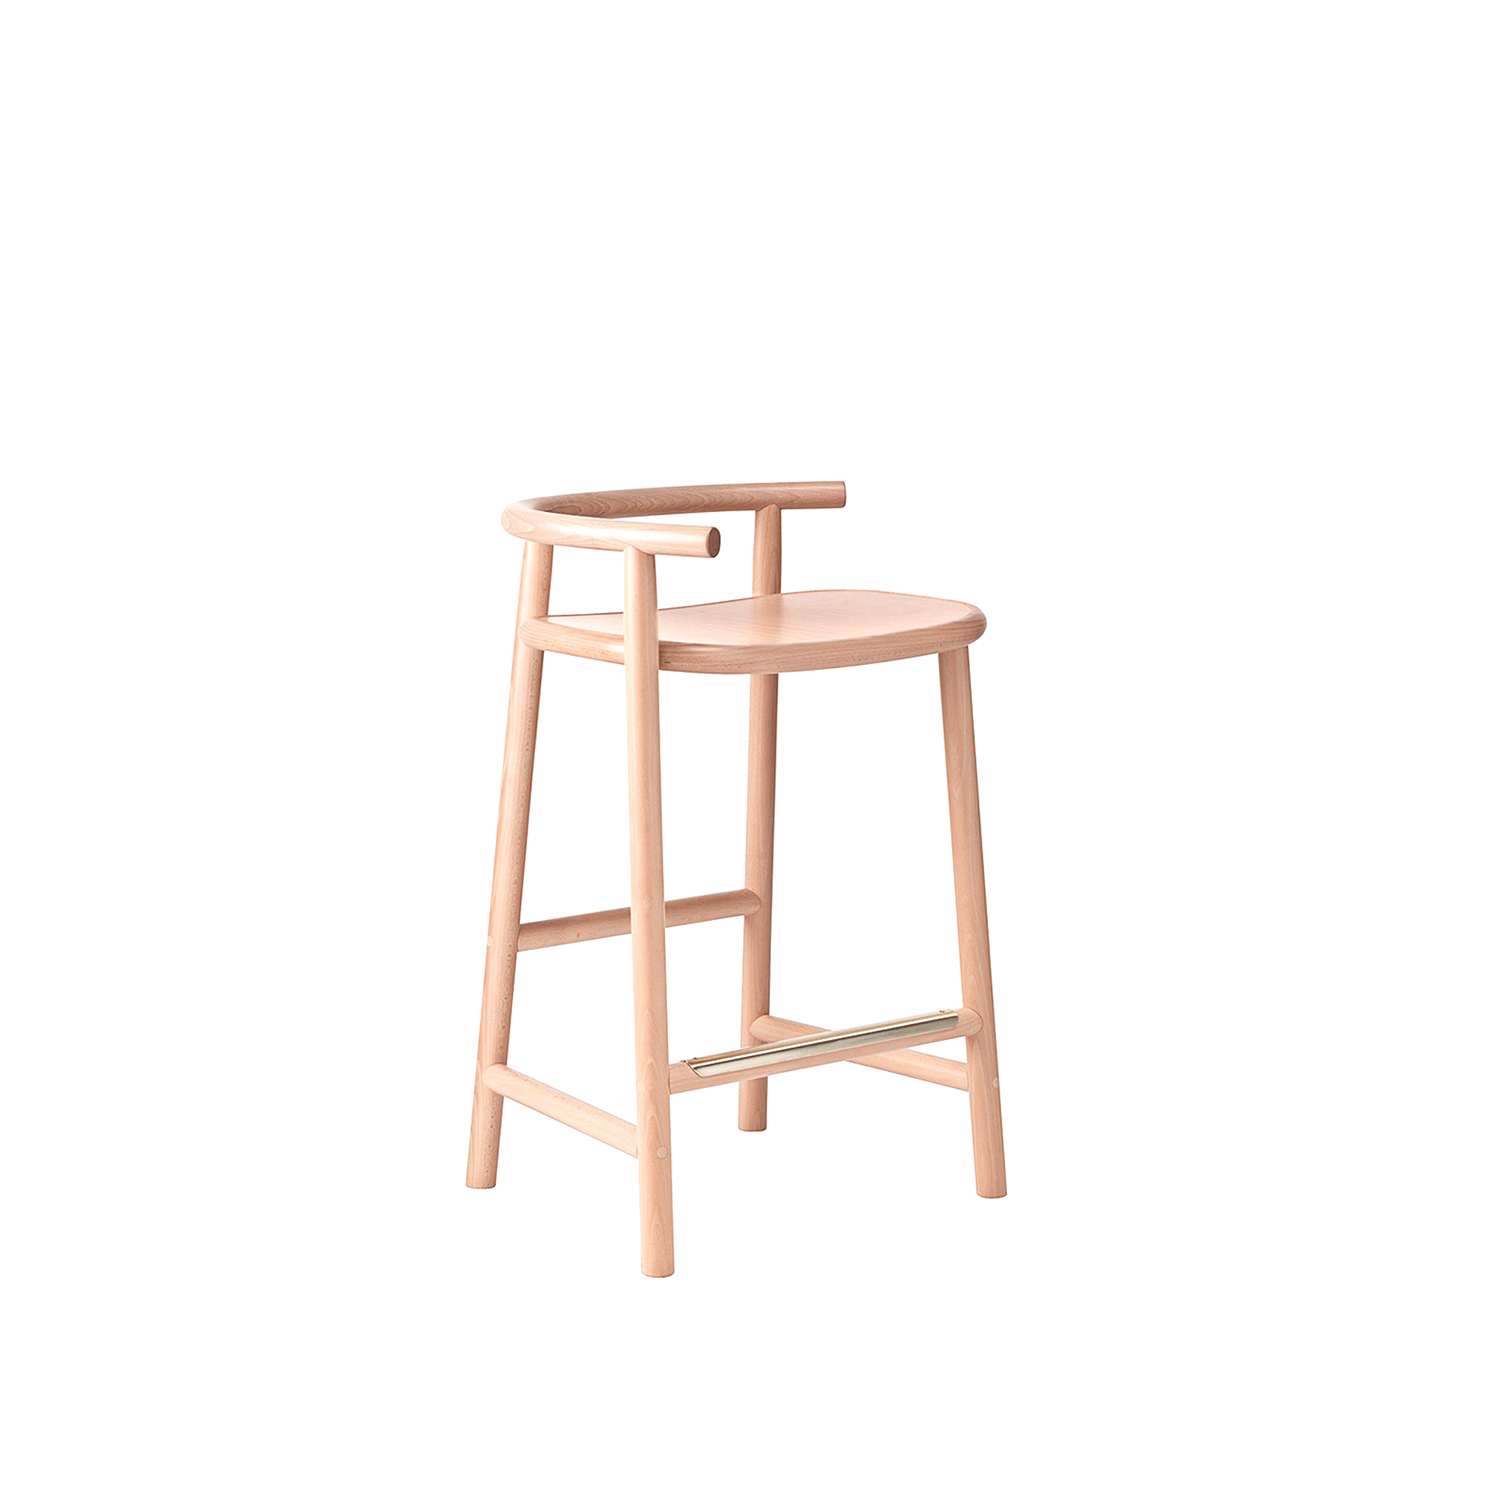 Single Curve Counter Stool - The combination of straight lines with a single bent section creates a strong sense of contrast, which in turn further highlights the attraction of the bentwood design. The utmost care was taken to ensure that the materials, part sizes, and proportions all remain true to traditional Thonet design. | Matter of Stuff